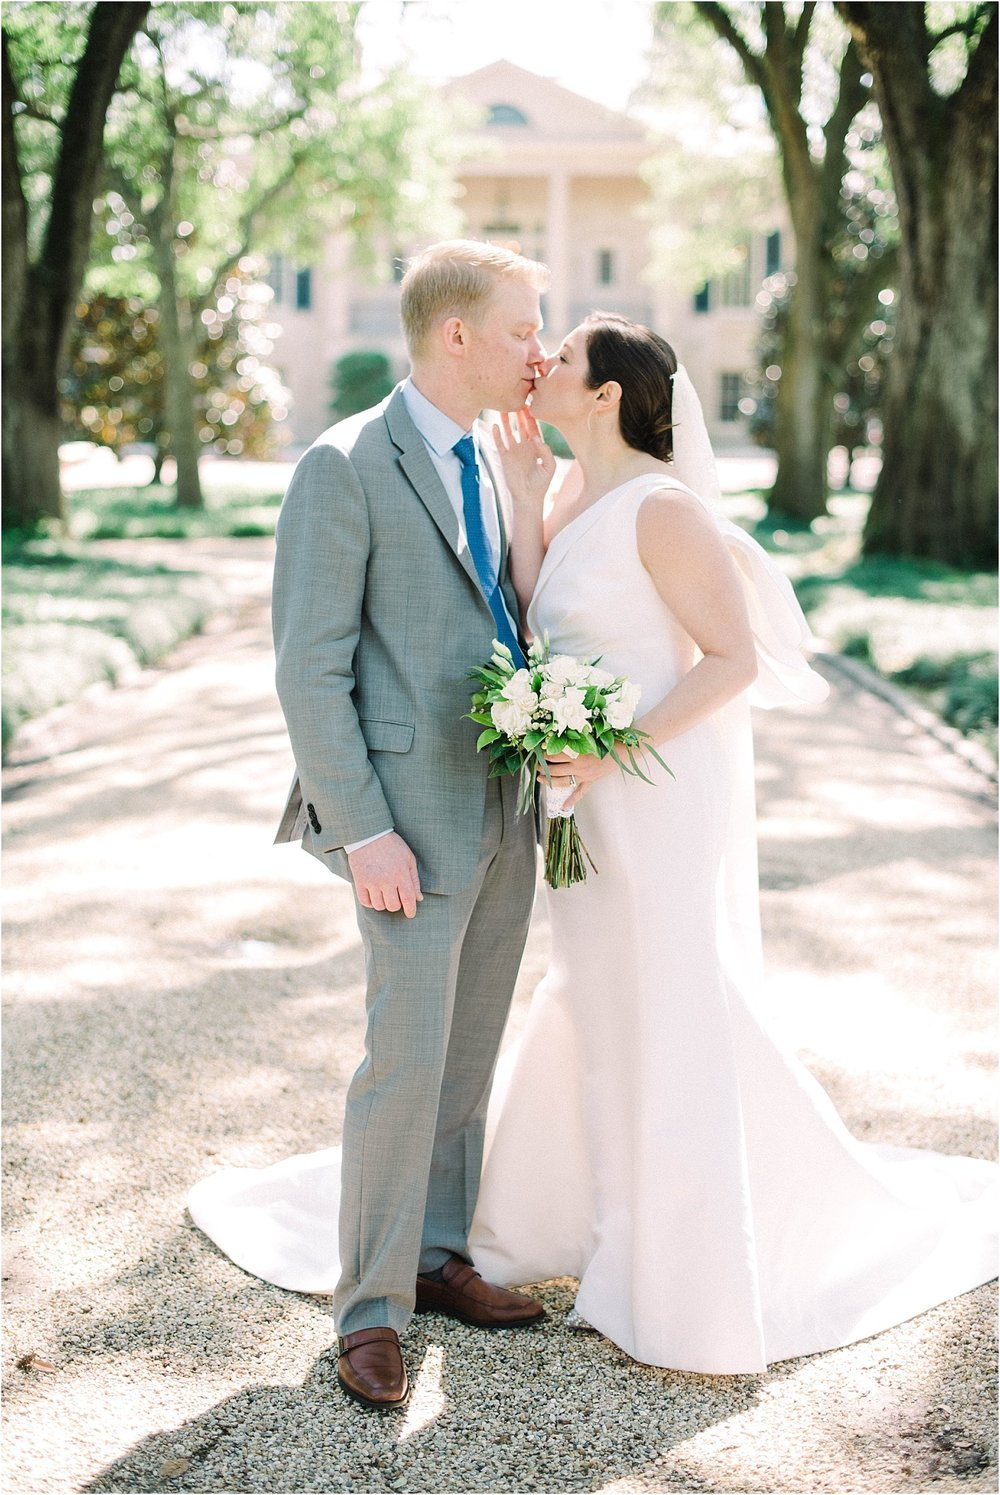 Heather + Scott-Longue-Vue-house-and-gardens-black-tie-wedding-photos_Gabby Chapin_Print_0008_BLOG.jpg